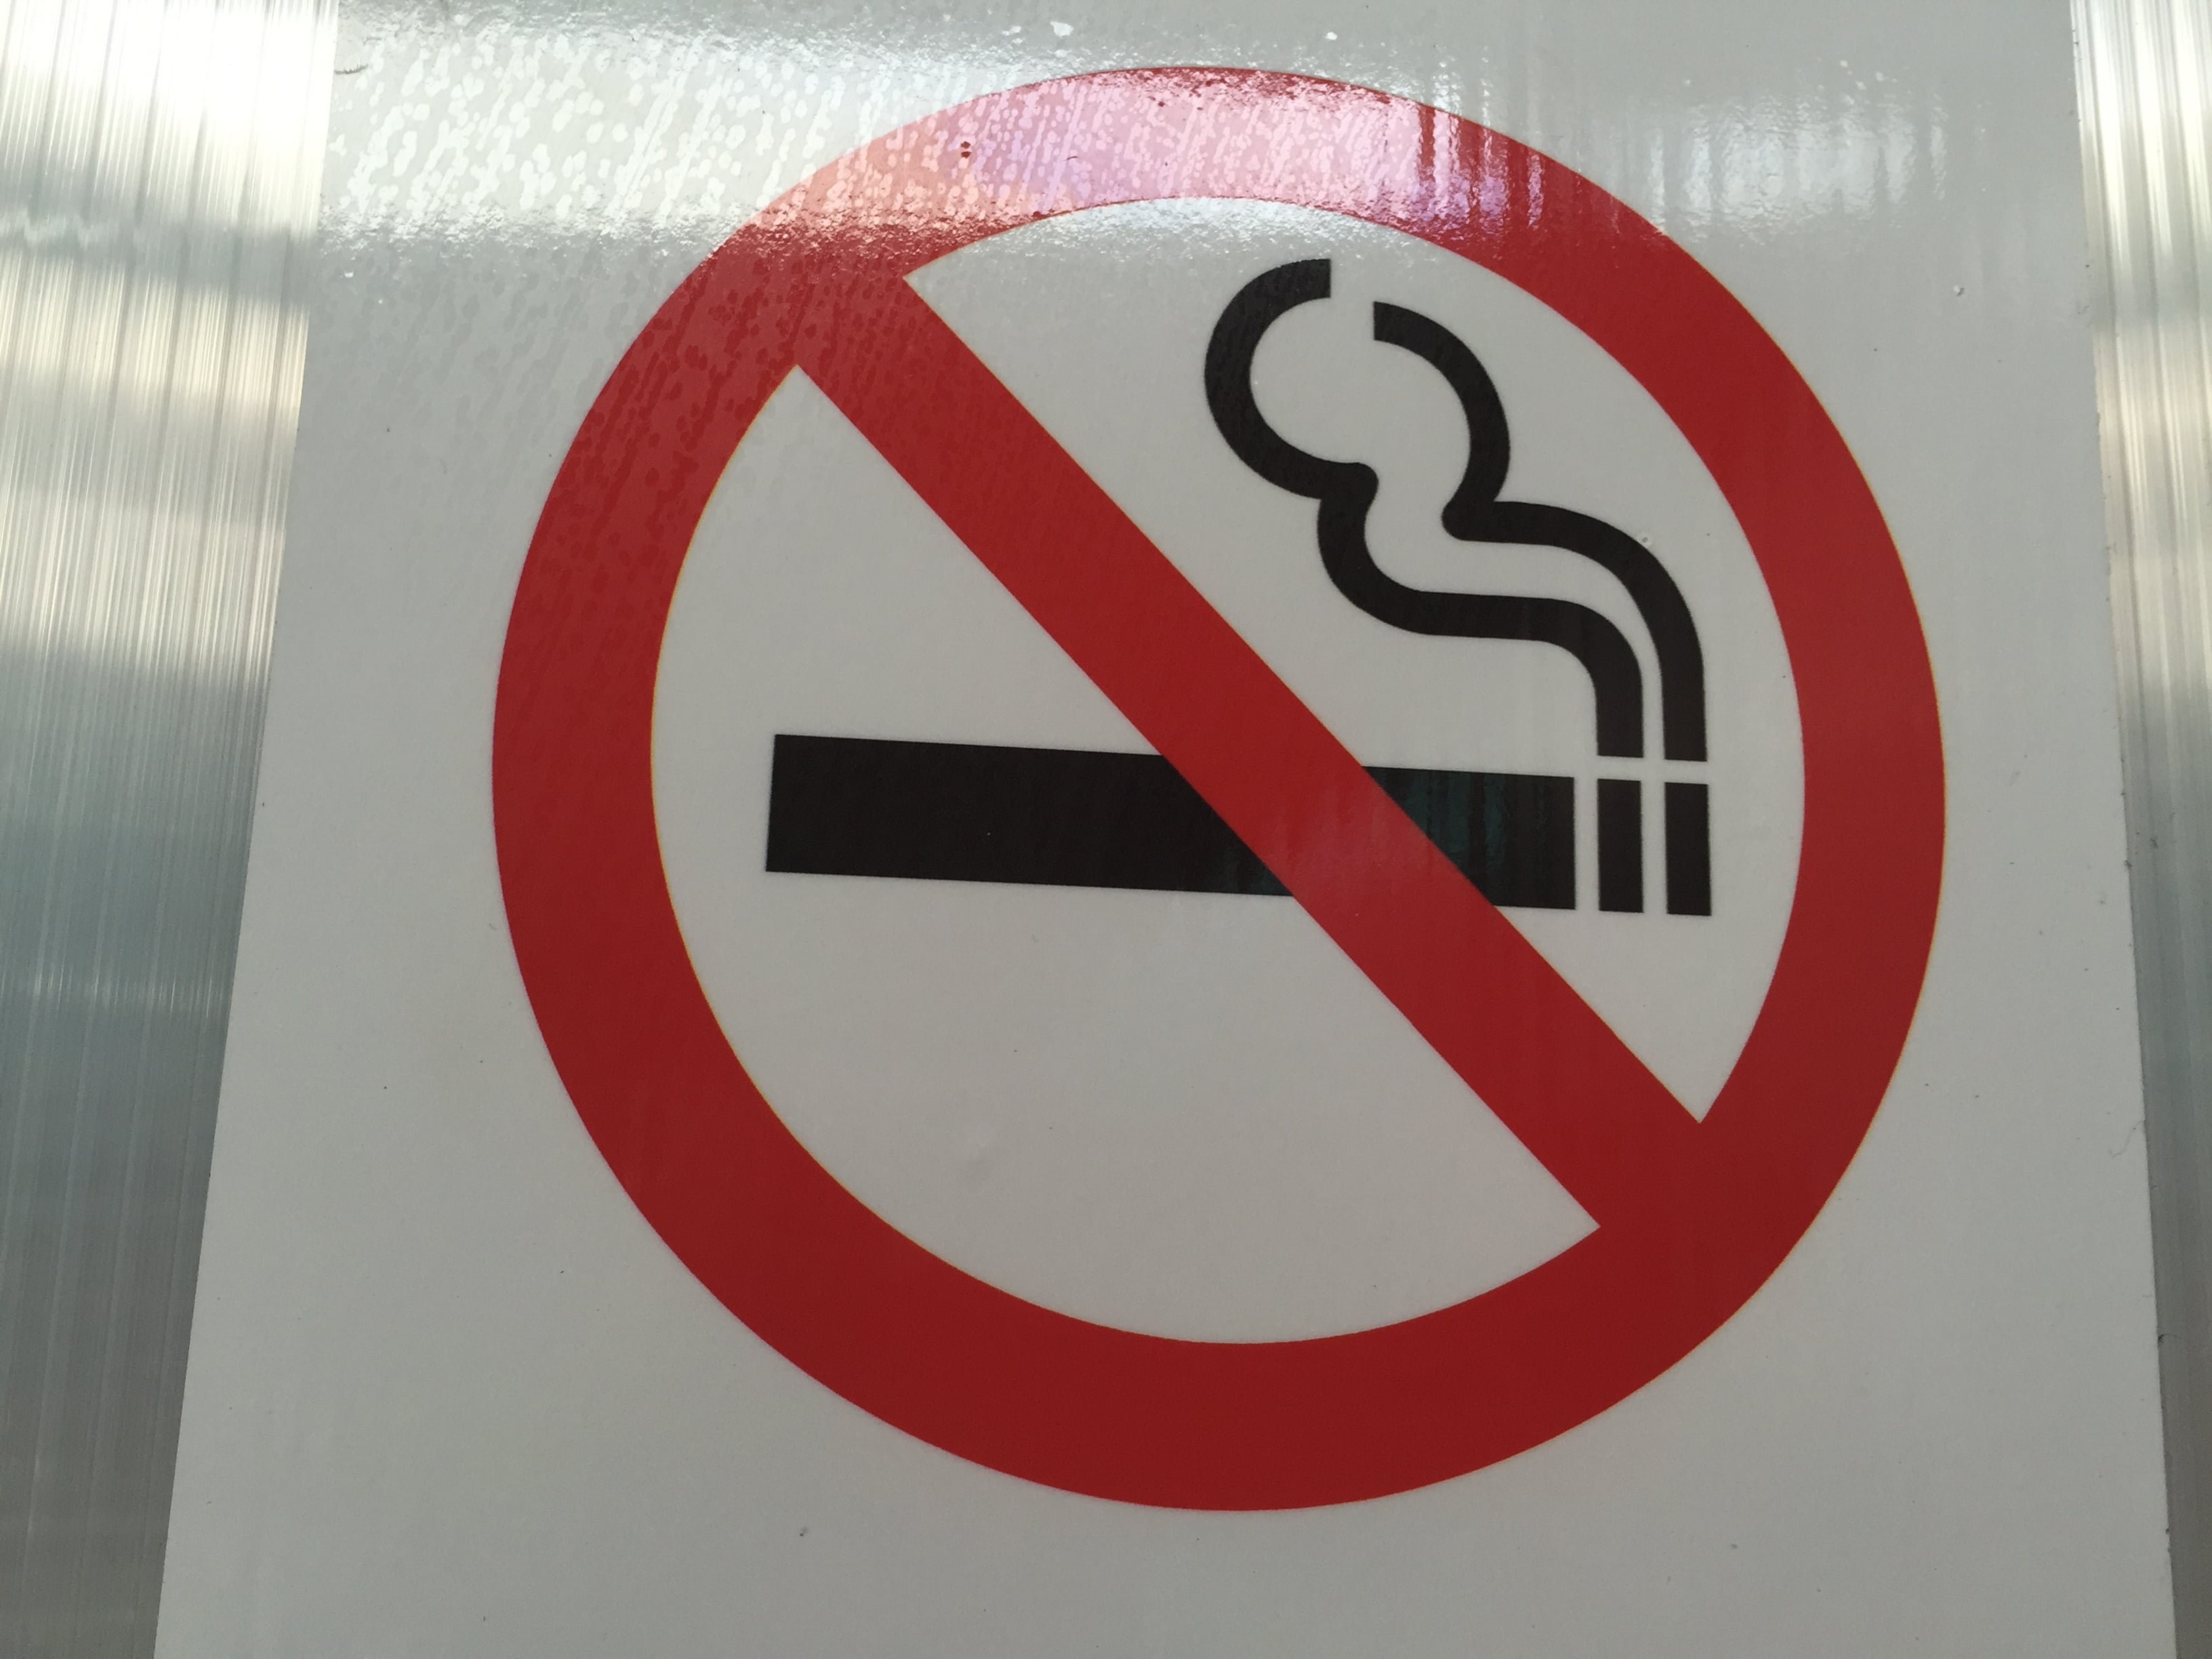 JournalWatch: Should Australia increase the minimum smoking age to 21?